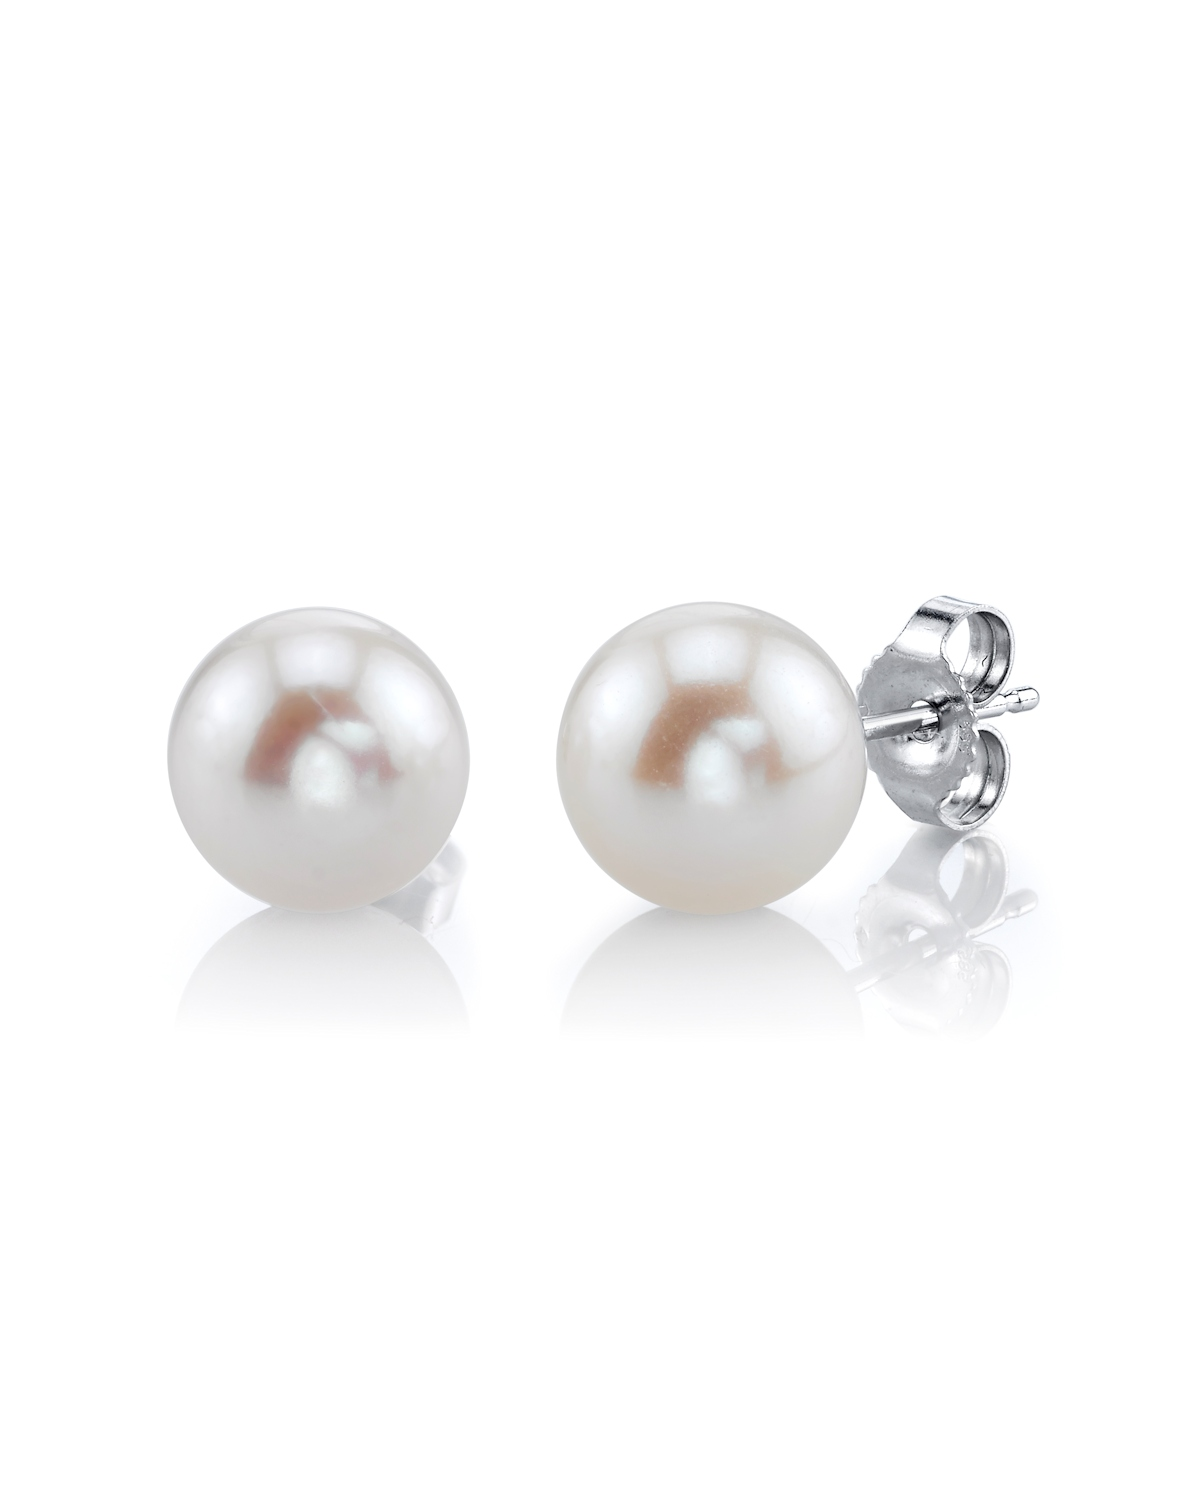 7mm White Freshwater Pearl Stud Earrings